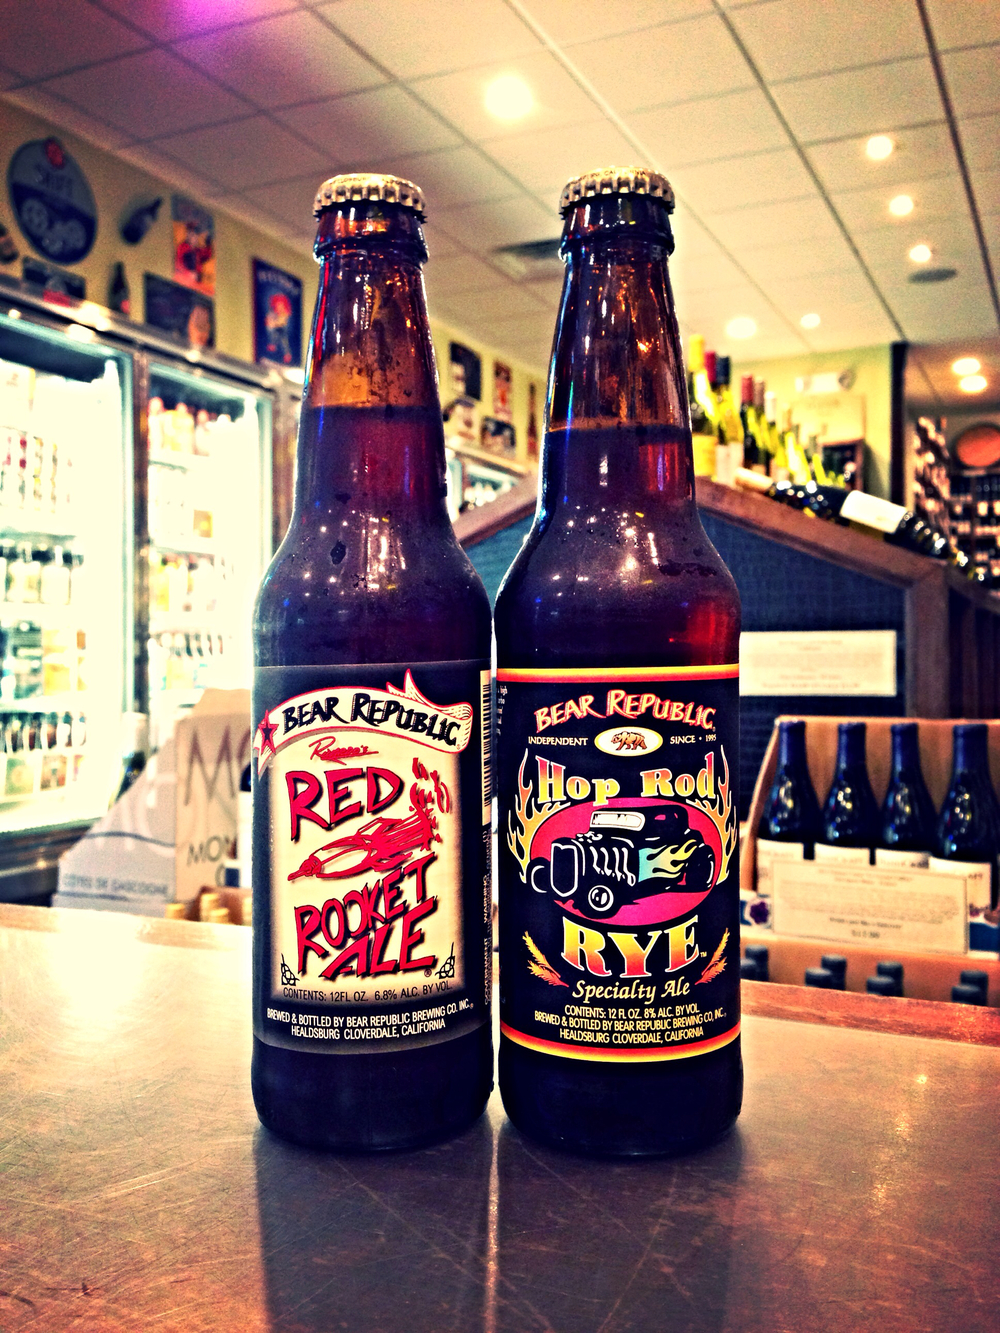 Bear Republic Red Rocket & Hop Rod Rye